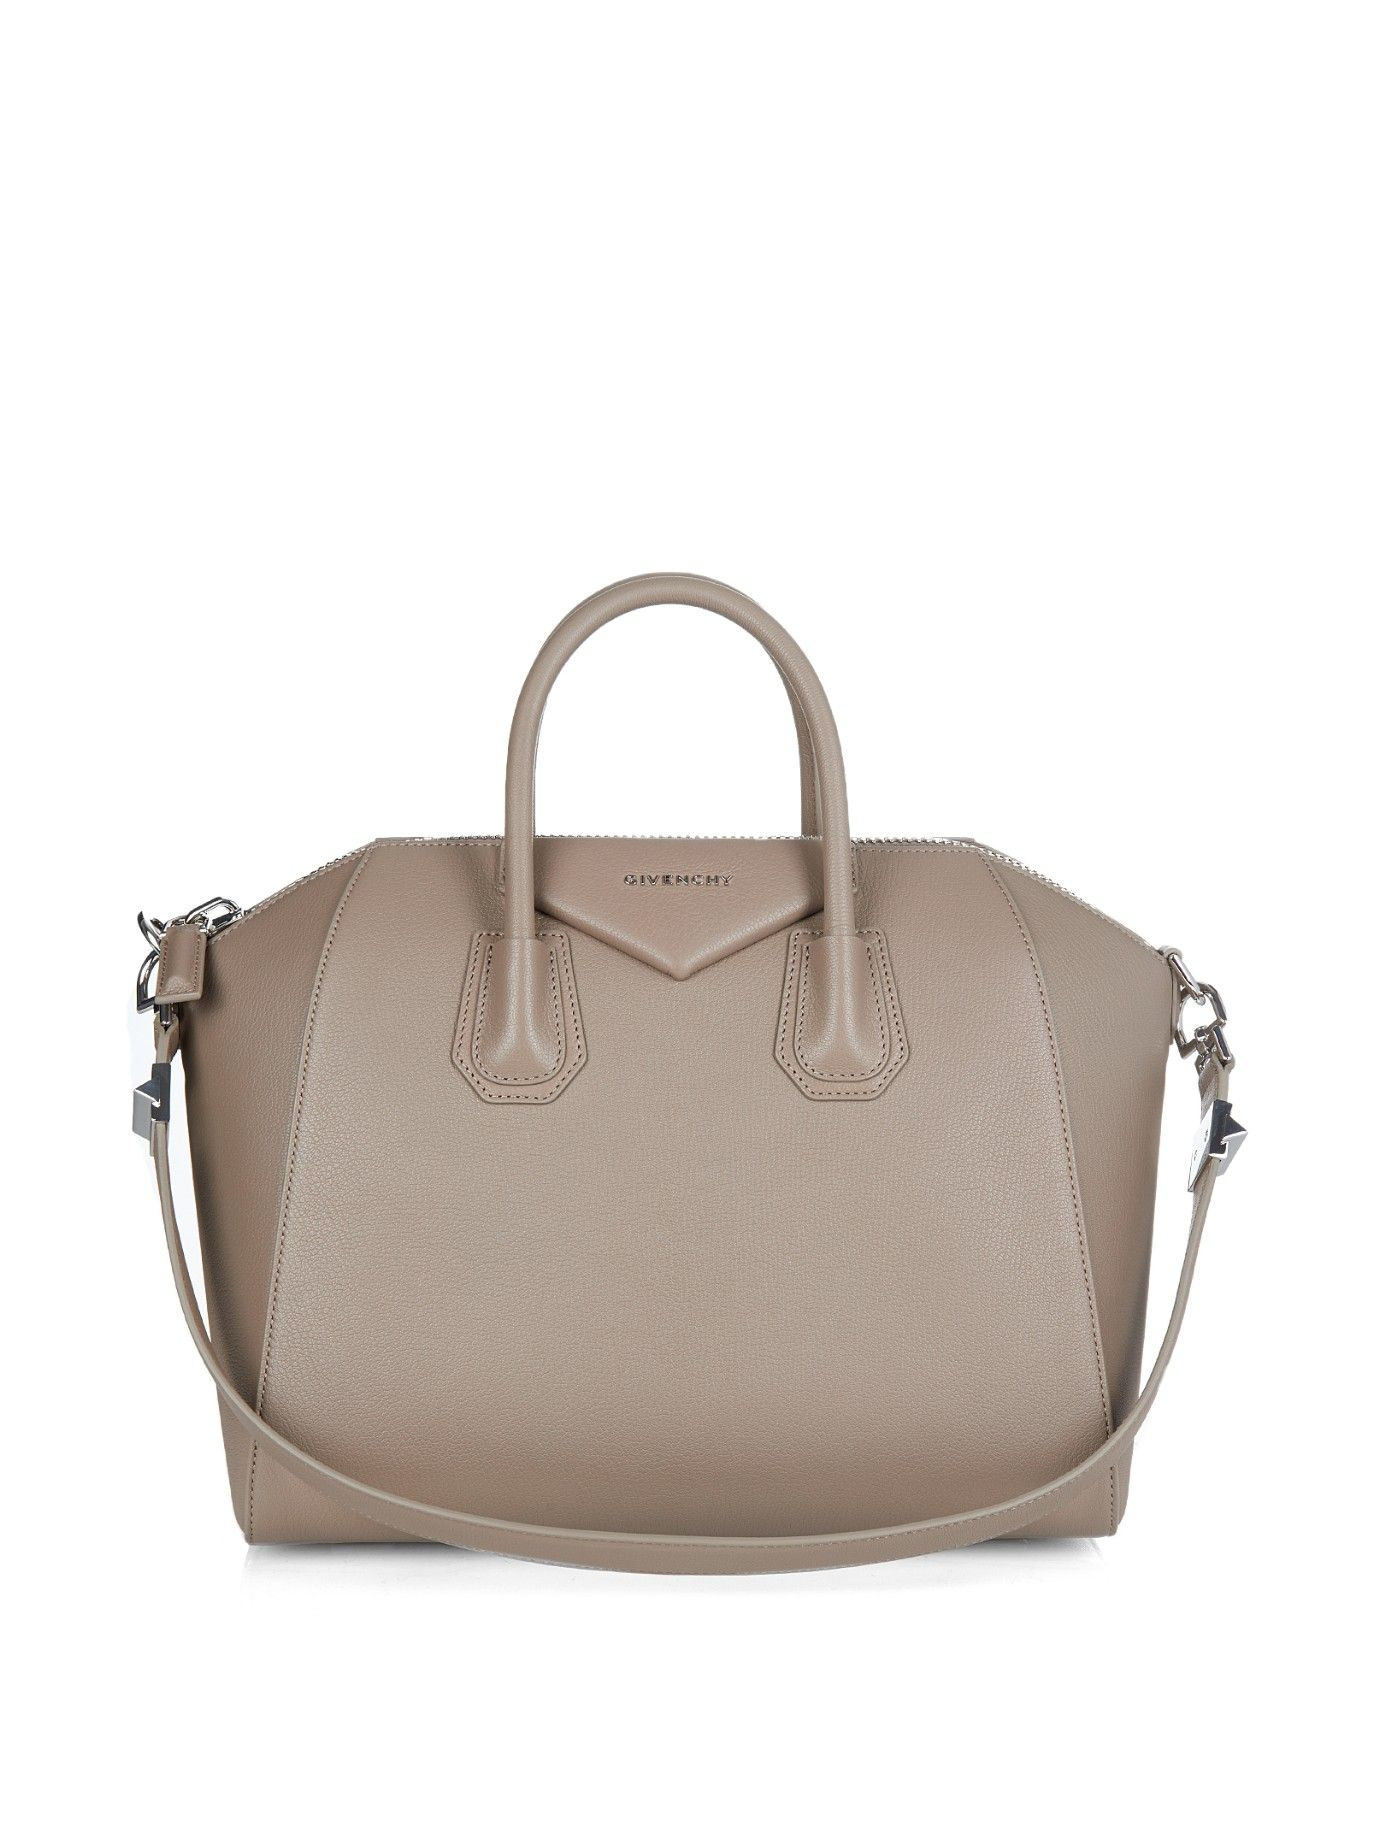 2858e7b4e0 Antigona medium sugar-leather tote